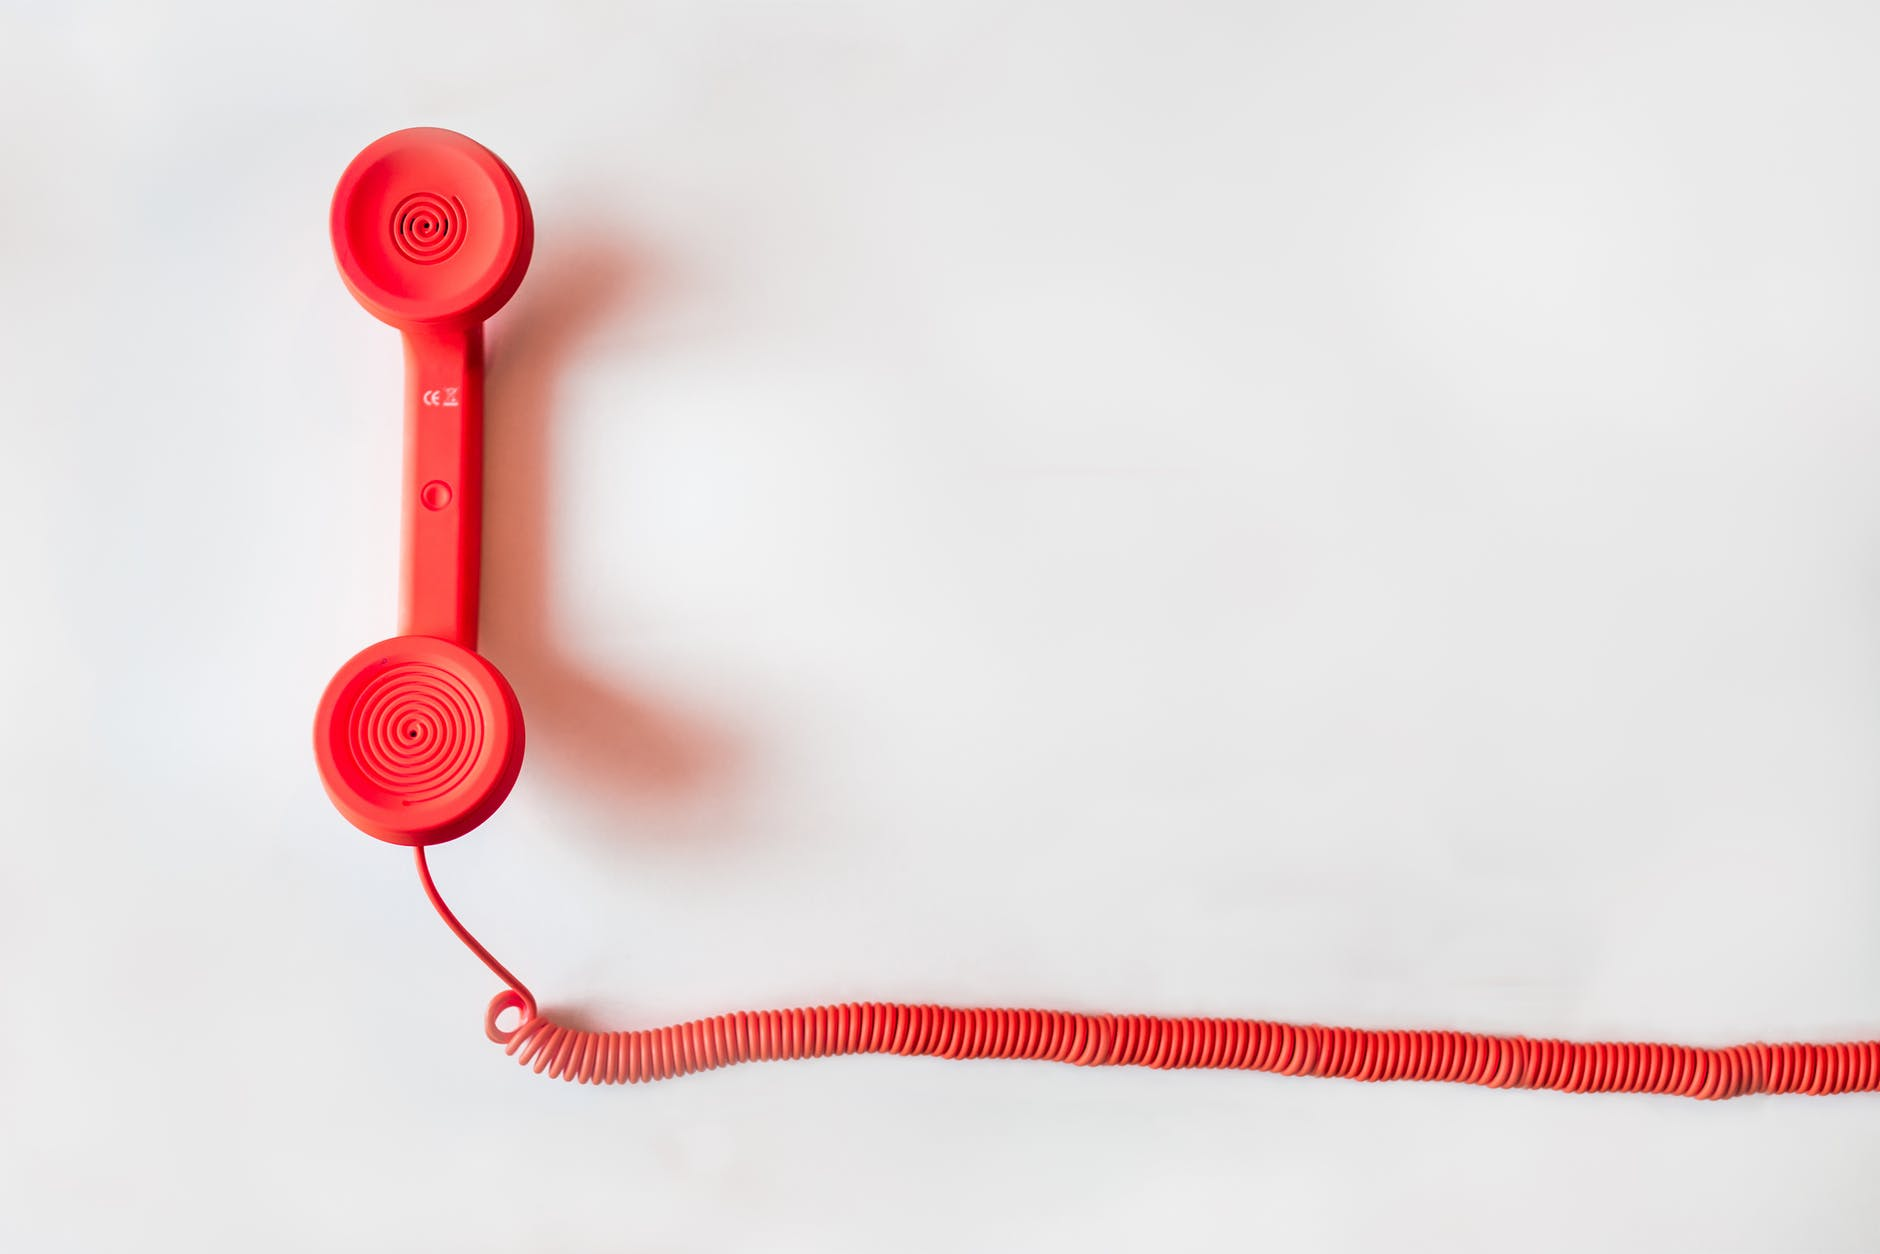 The long call options trading strategy has nothing to do with a phone, but it can give you some huge upside in investing.